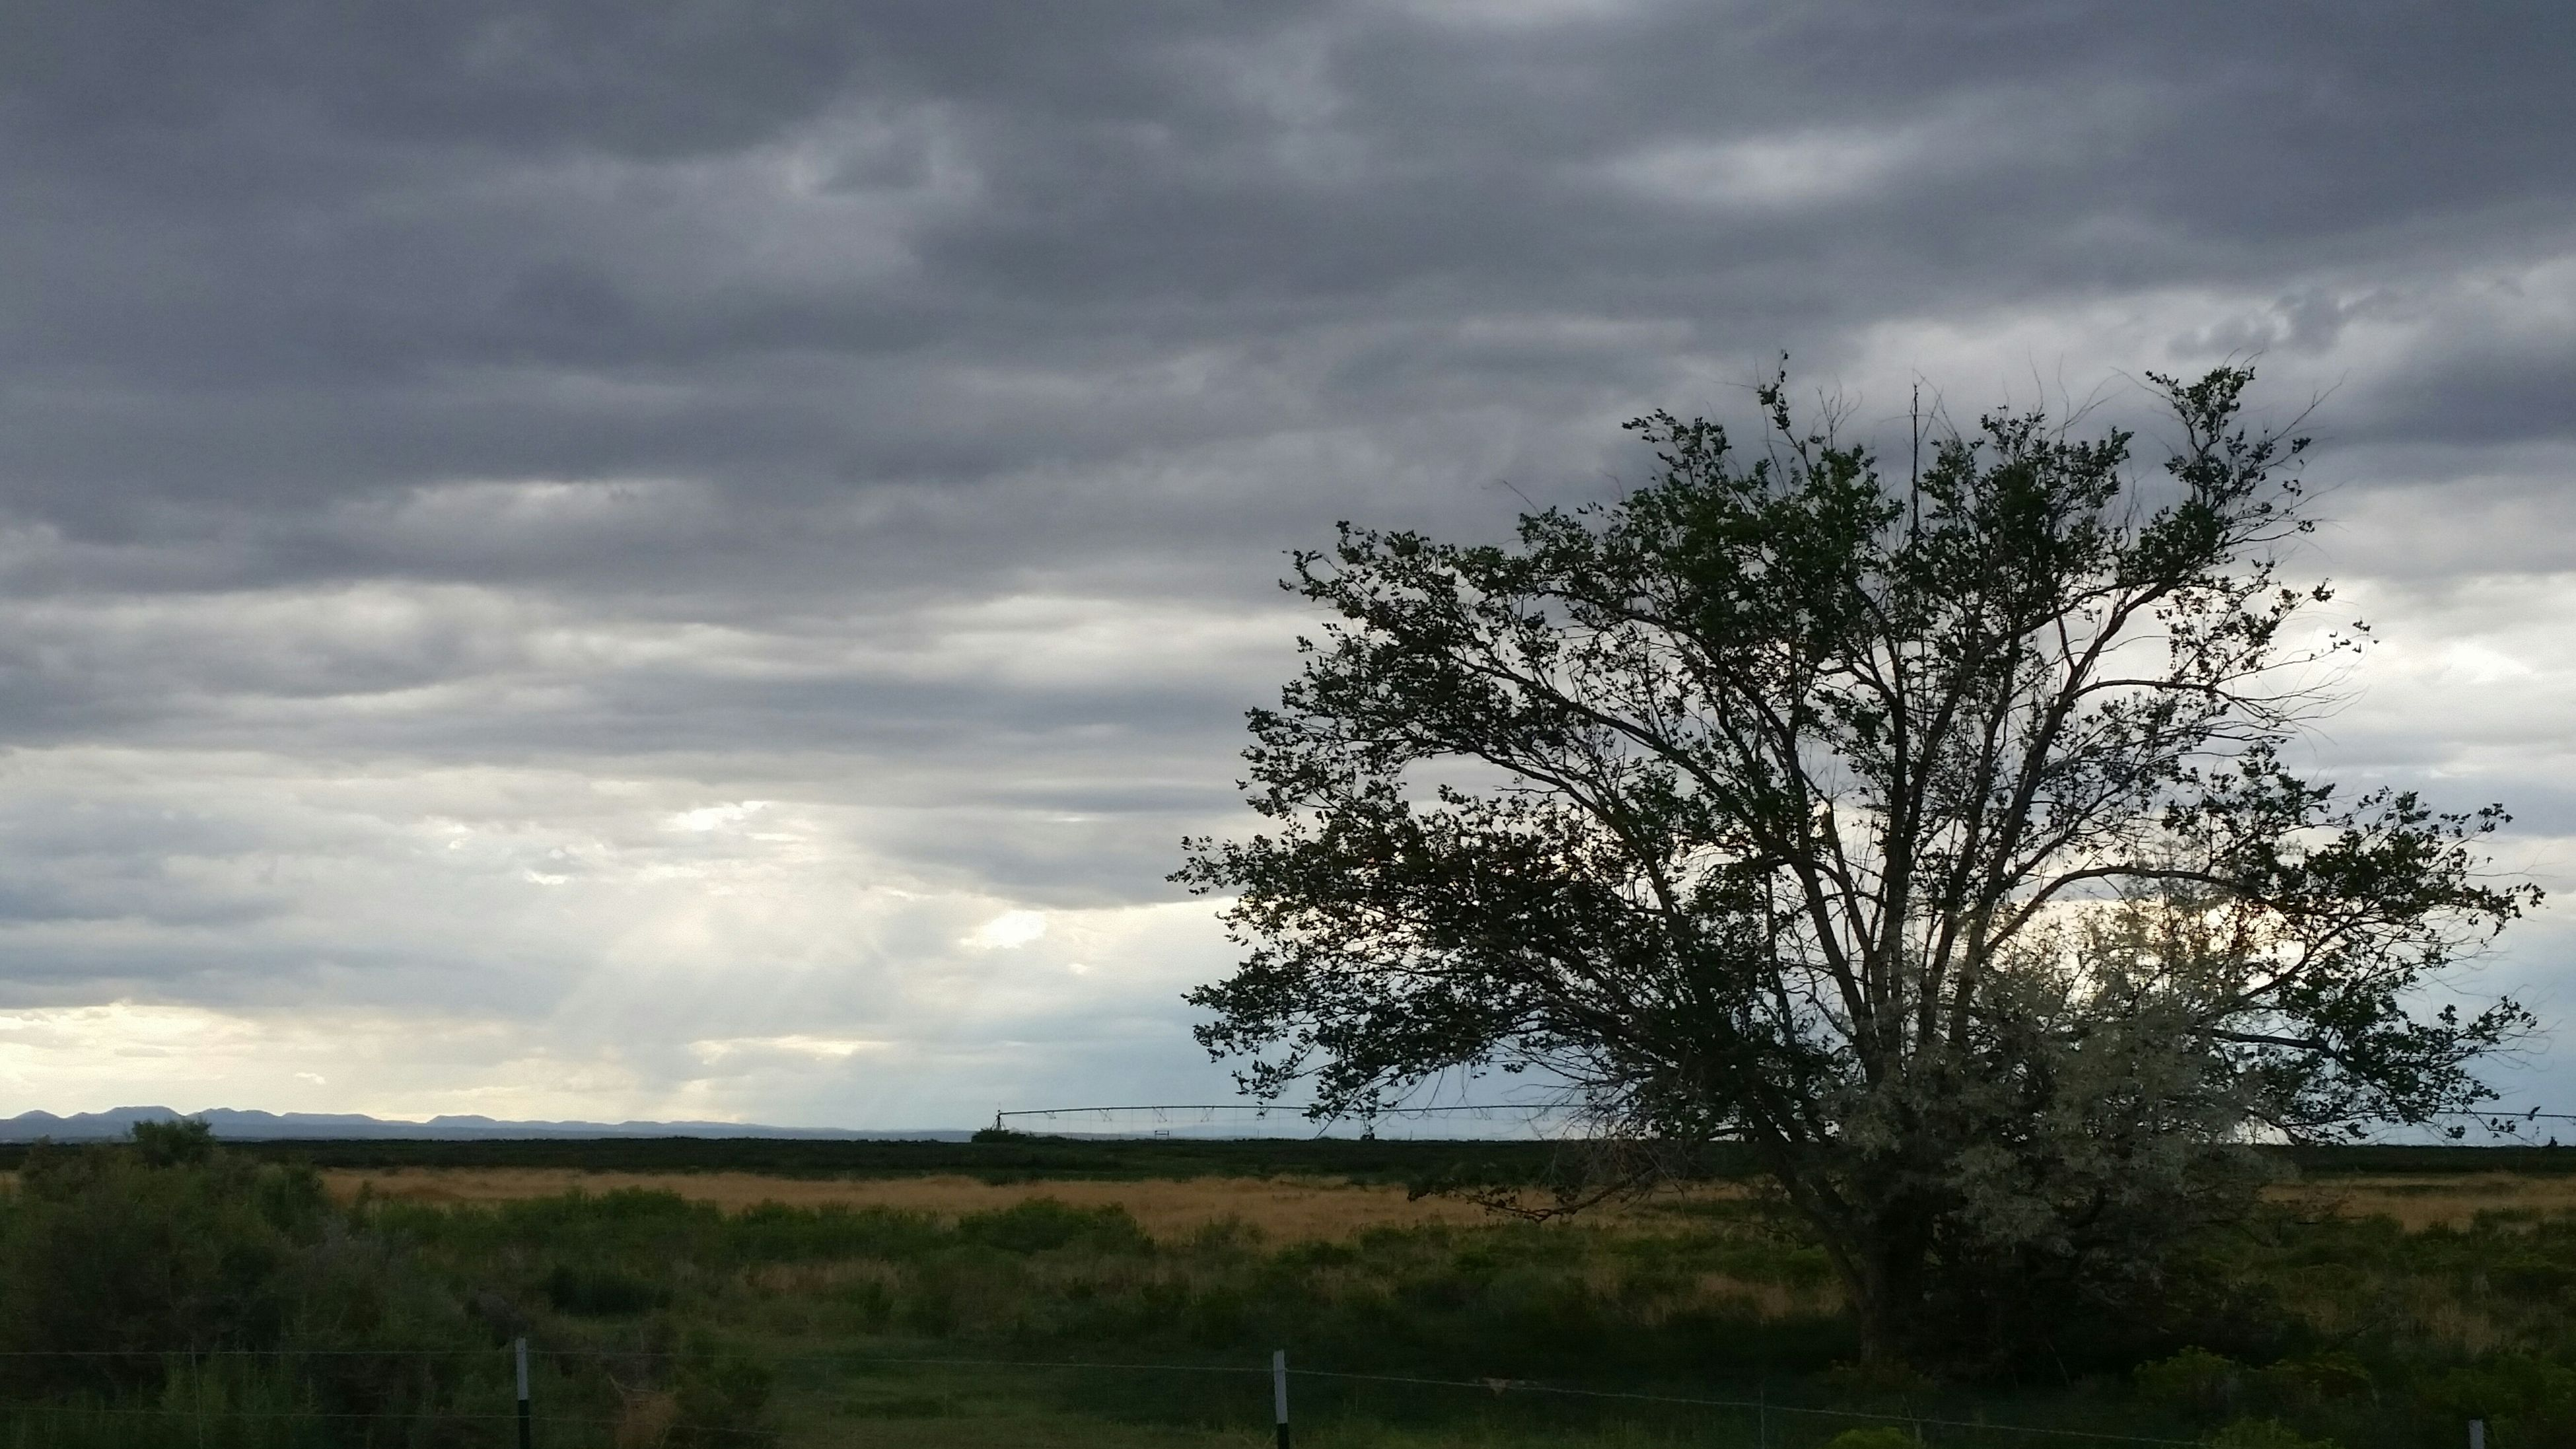 sky, tree, cloud - sky, field, tranquility, grass, cloudy, landscape, tranquil scene, cloud, growth, nature, scenics, beauty in nature, bare tree, grassy, branch, non-urban scene, plant, day